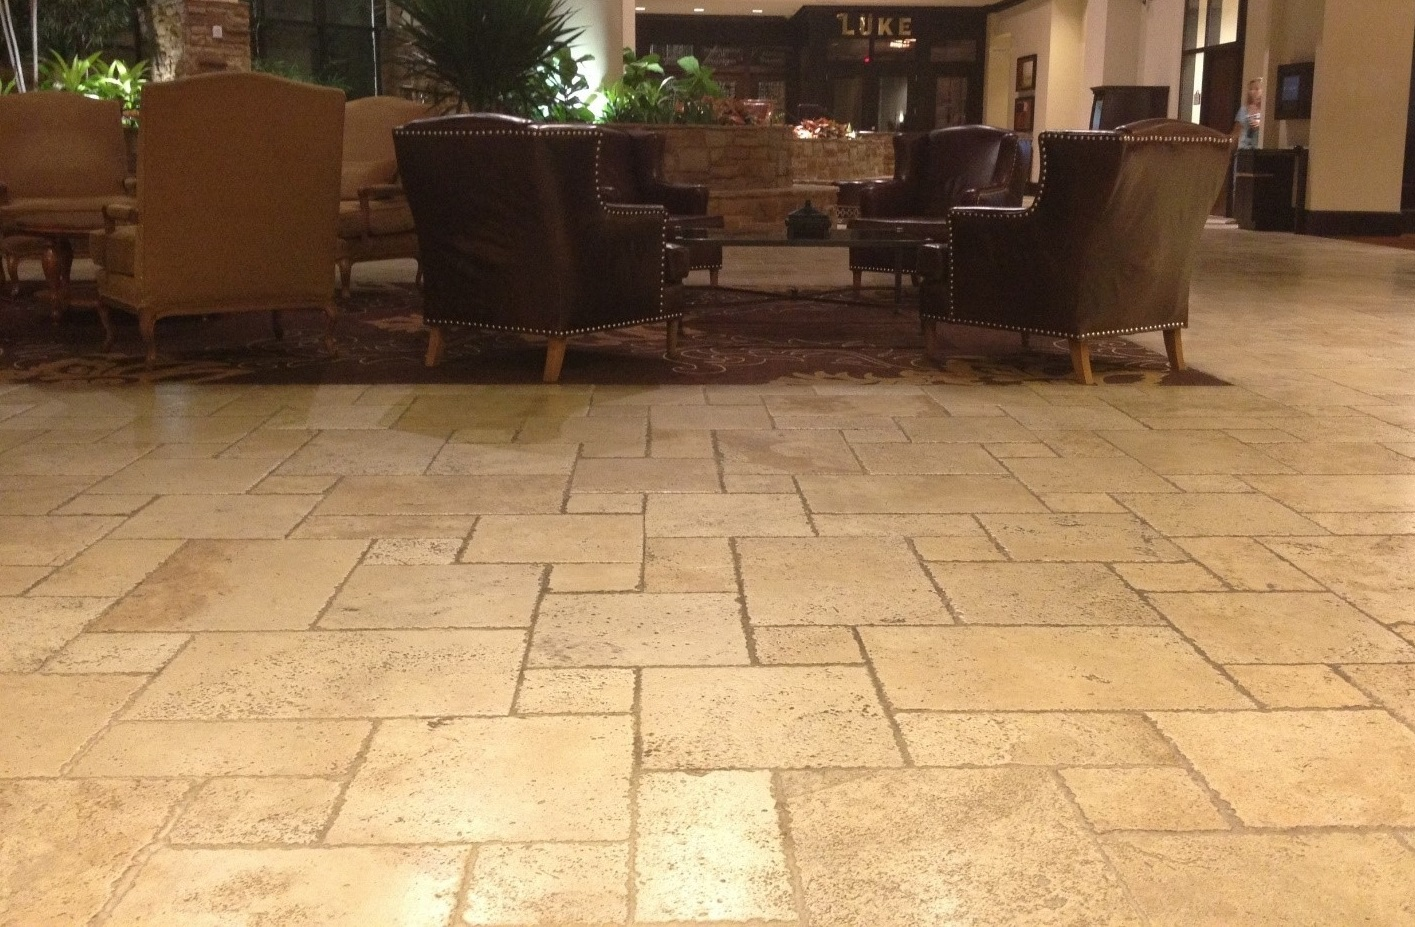 Eye catching tile patterns flooringinc blog eye catching tile patterns create any look from classic to trendy to avant garde with dailygadgetfo Choice Image